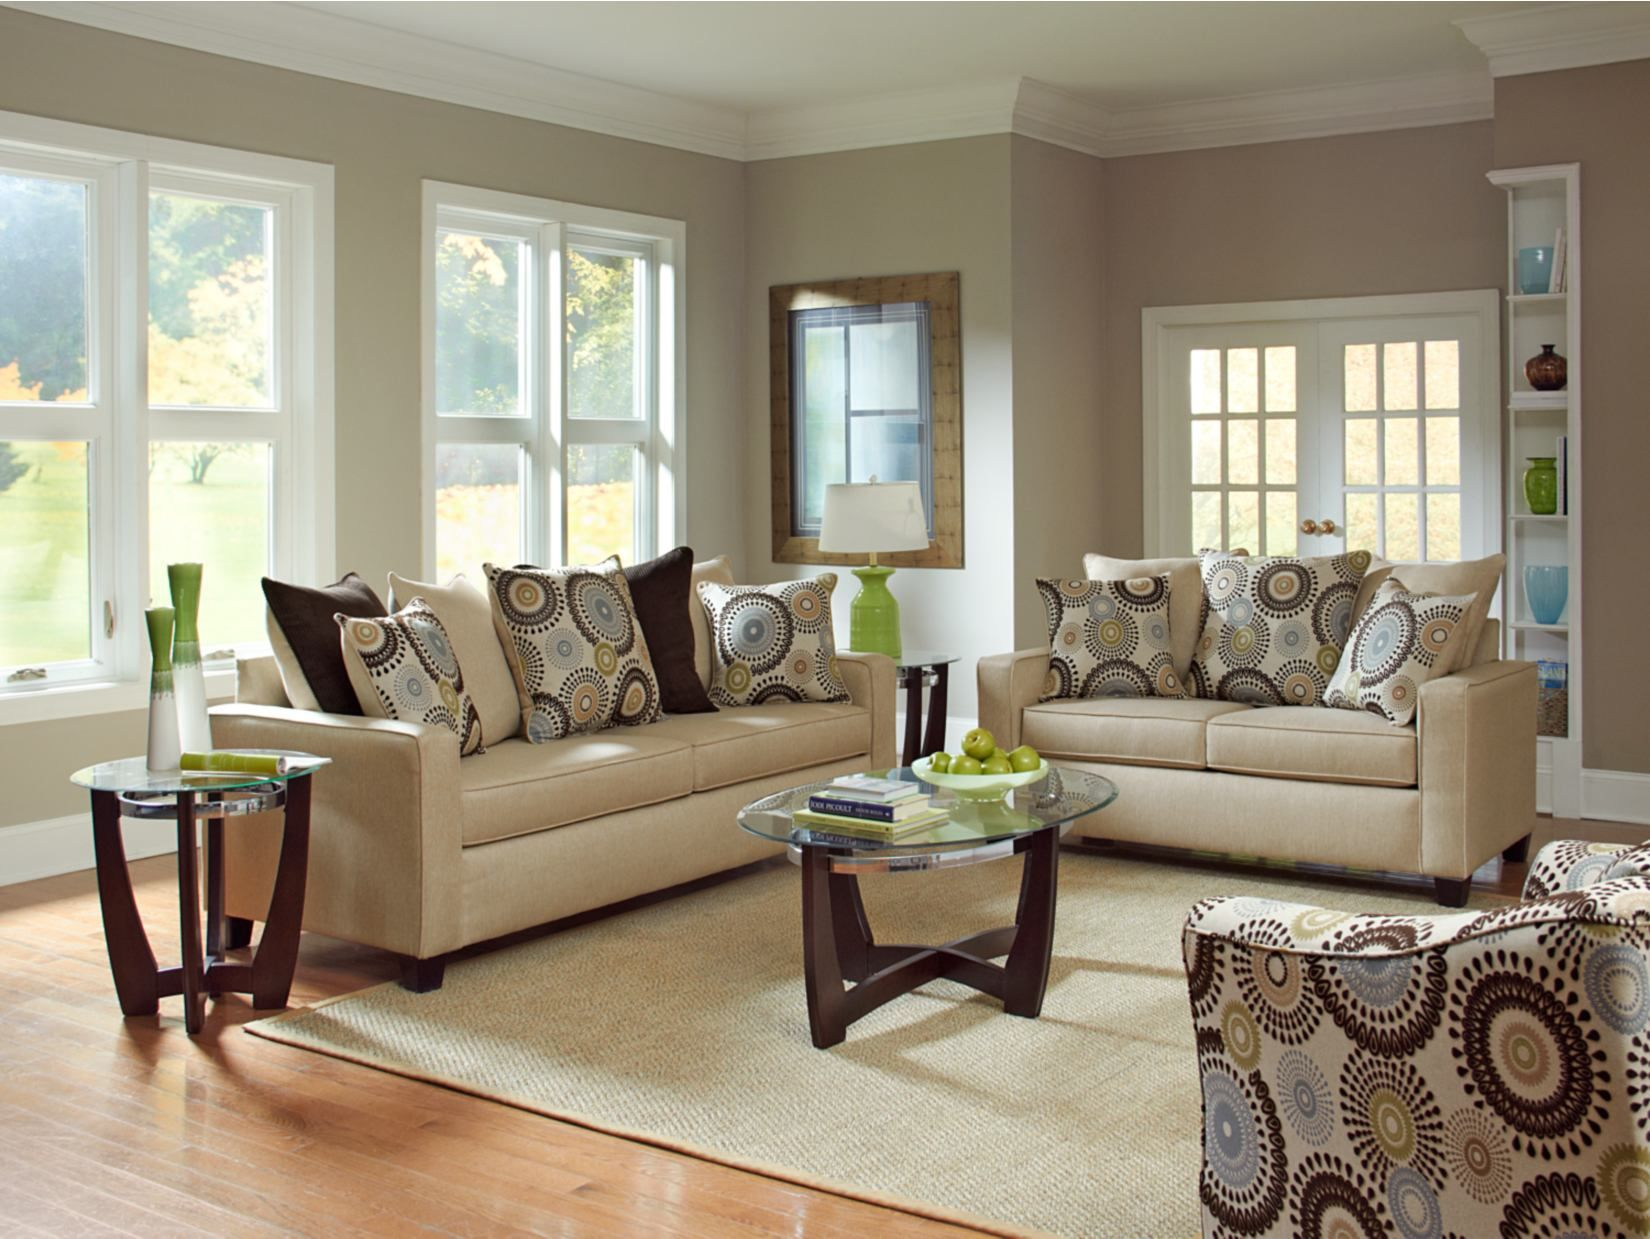 Cream Sofa Living Room Designs Classy Stoked Cream Sofa  Value City Furniture  For The Home Decorating Design